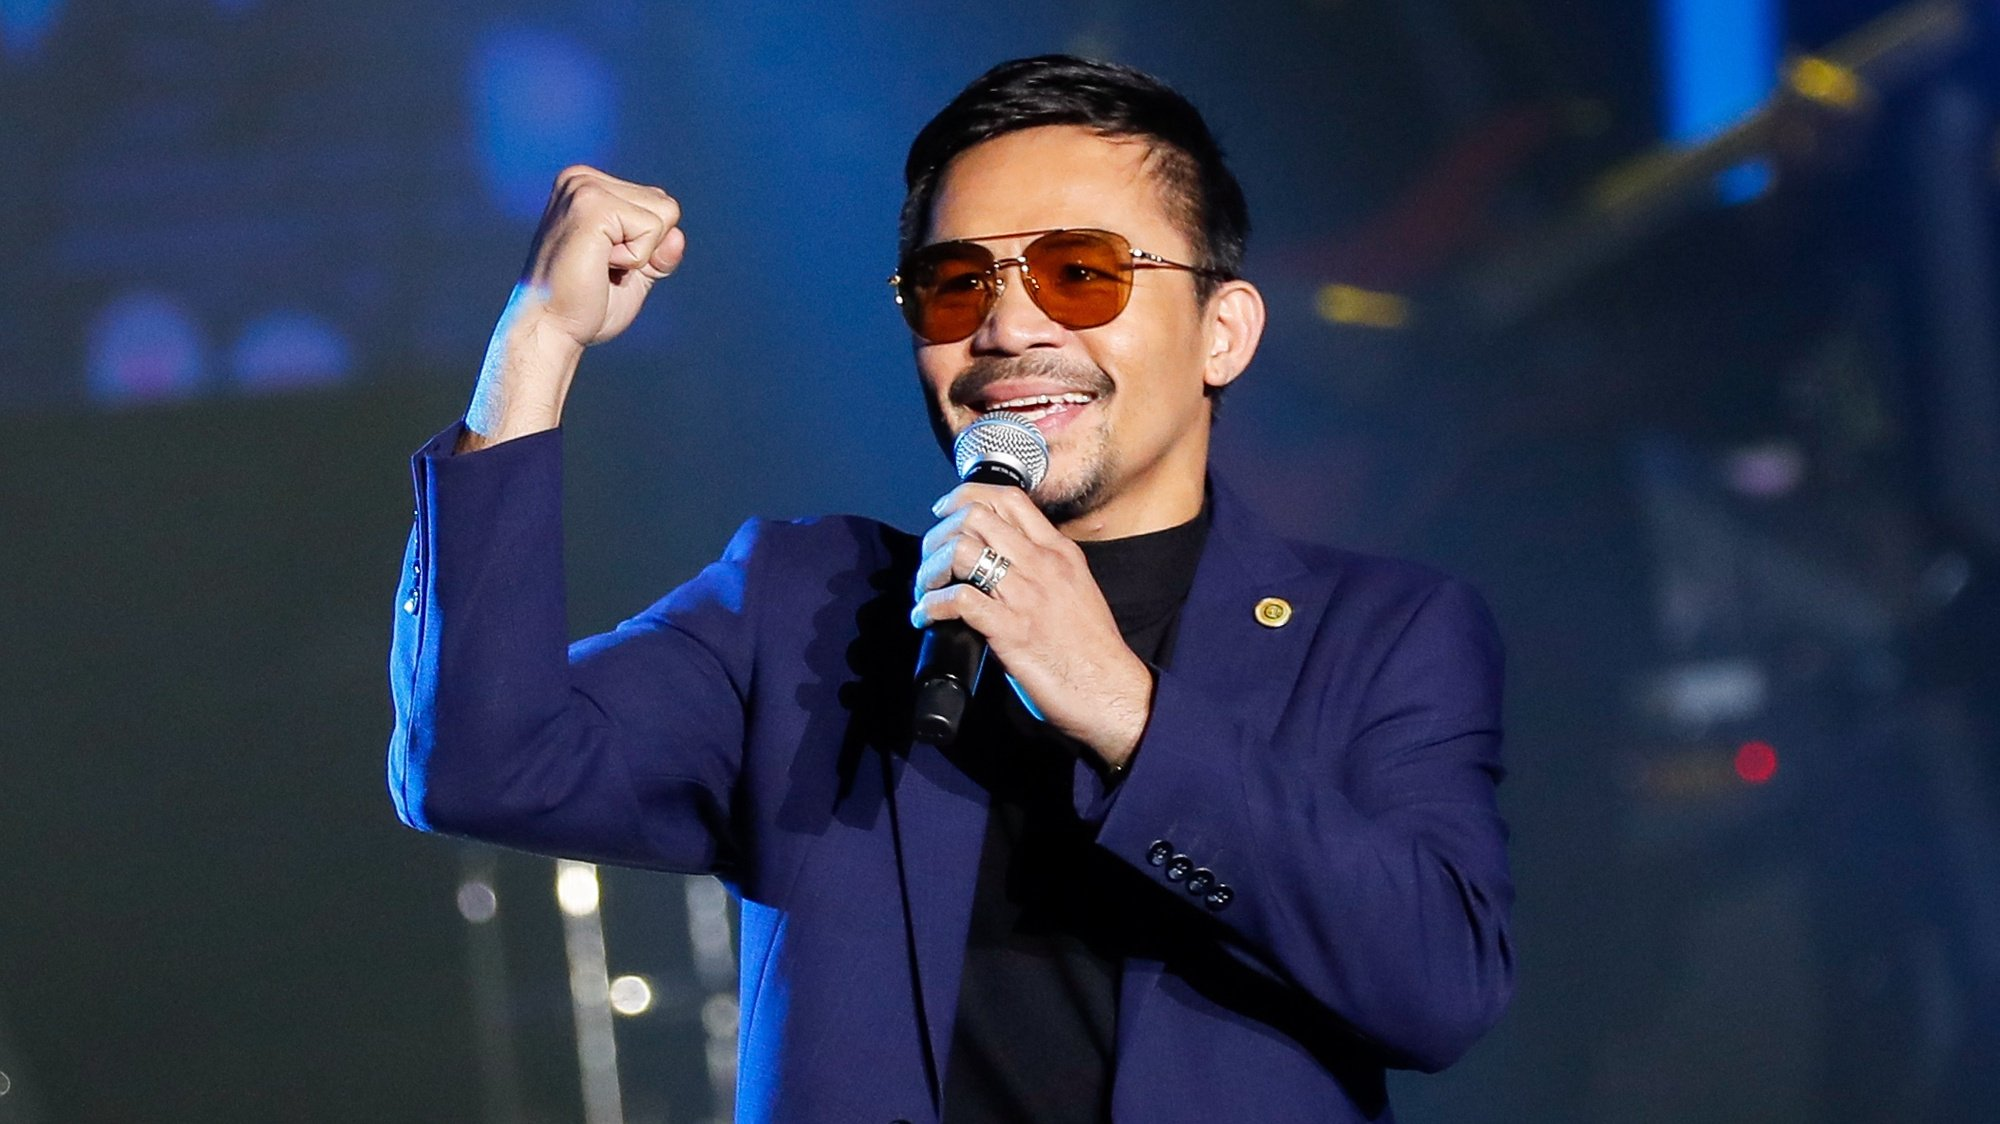 epa09475975 (FILE) - Filipino boxing champion and senator Manny Pacquiao performs during the launch of his own crypto currency in Manila, Philippines 01 September 2019 (reissued 19 September 2021). Pacquiao accepted the nomination of his PDP-Laban party to run for president in 2022, as he said on 19 September 2021.  EPA/MARK R. CRISTINO *** Local Caption *** 55435064